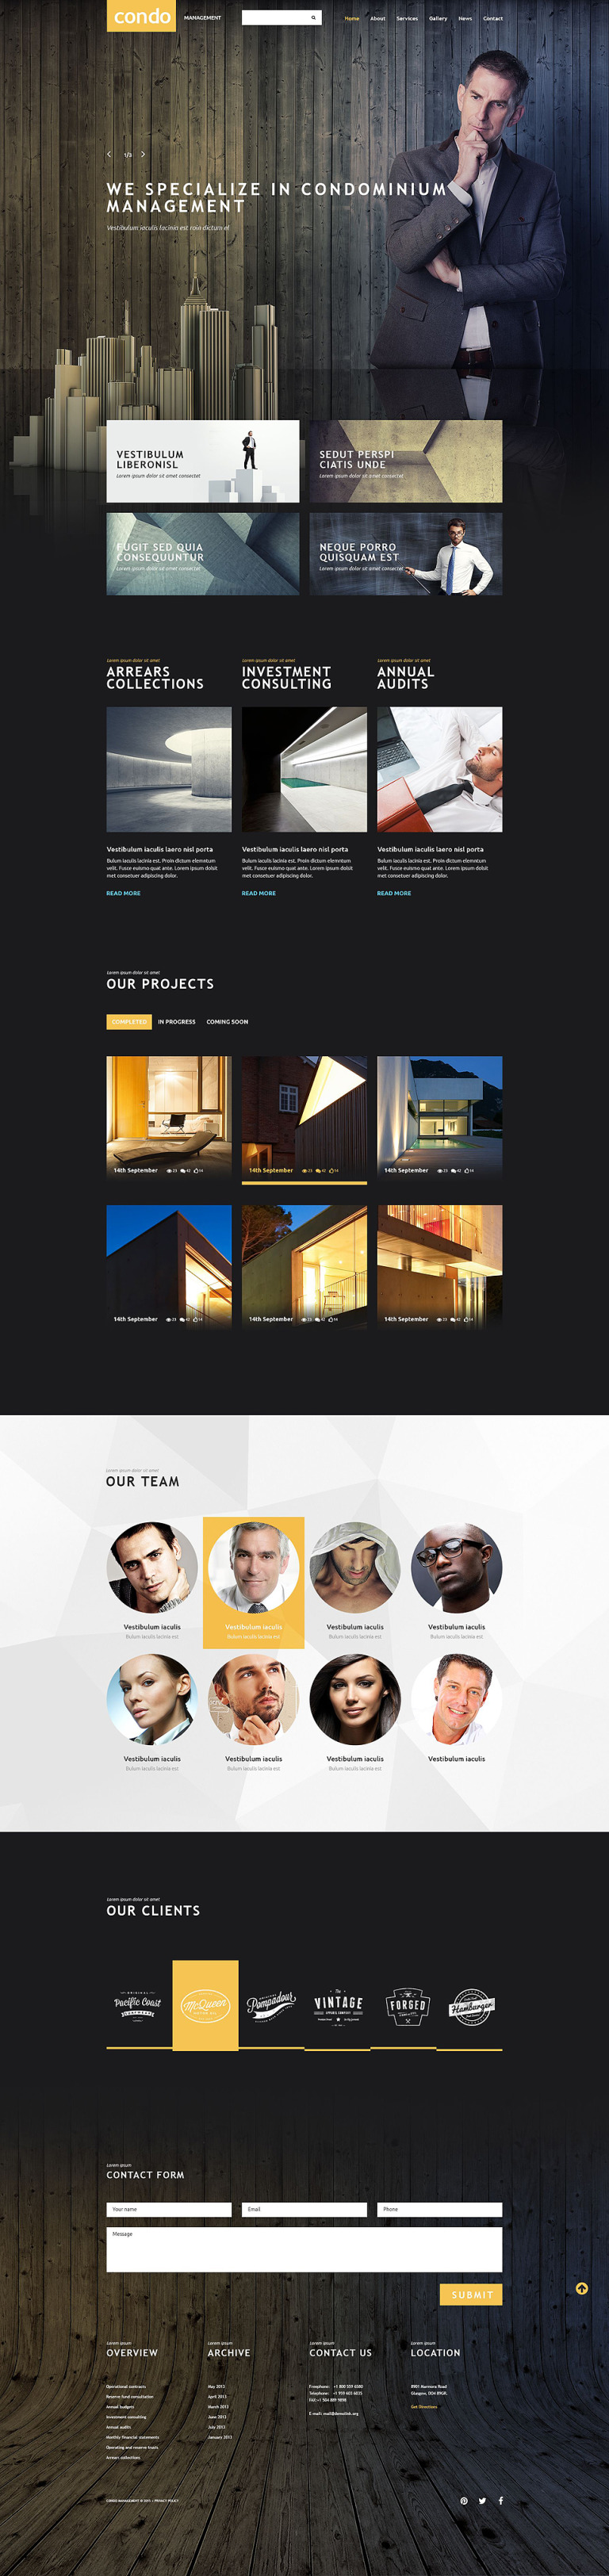 Asset Management Website Template New Screenshots BIG